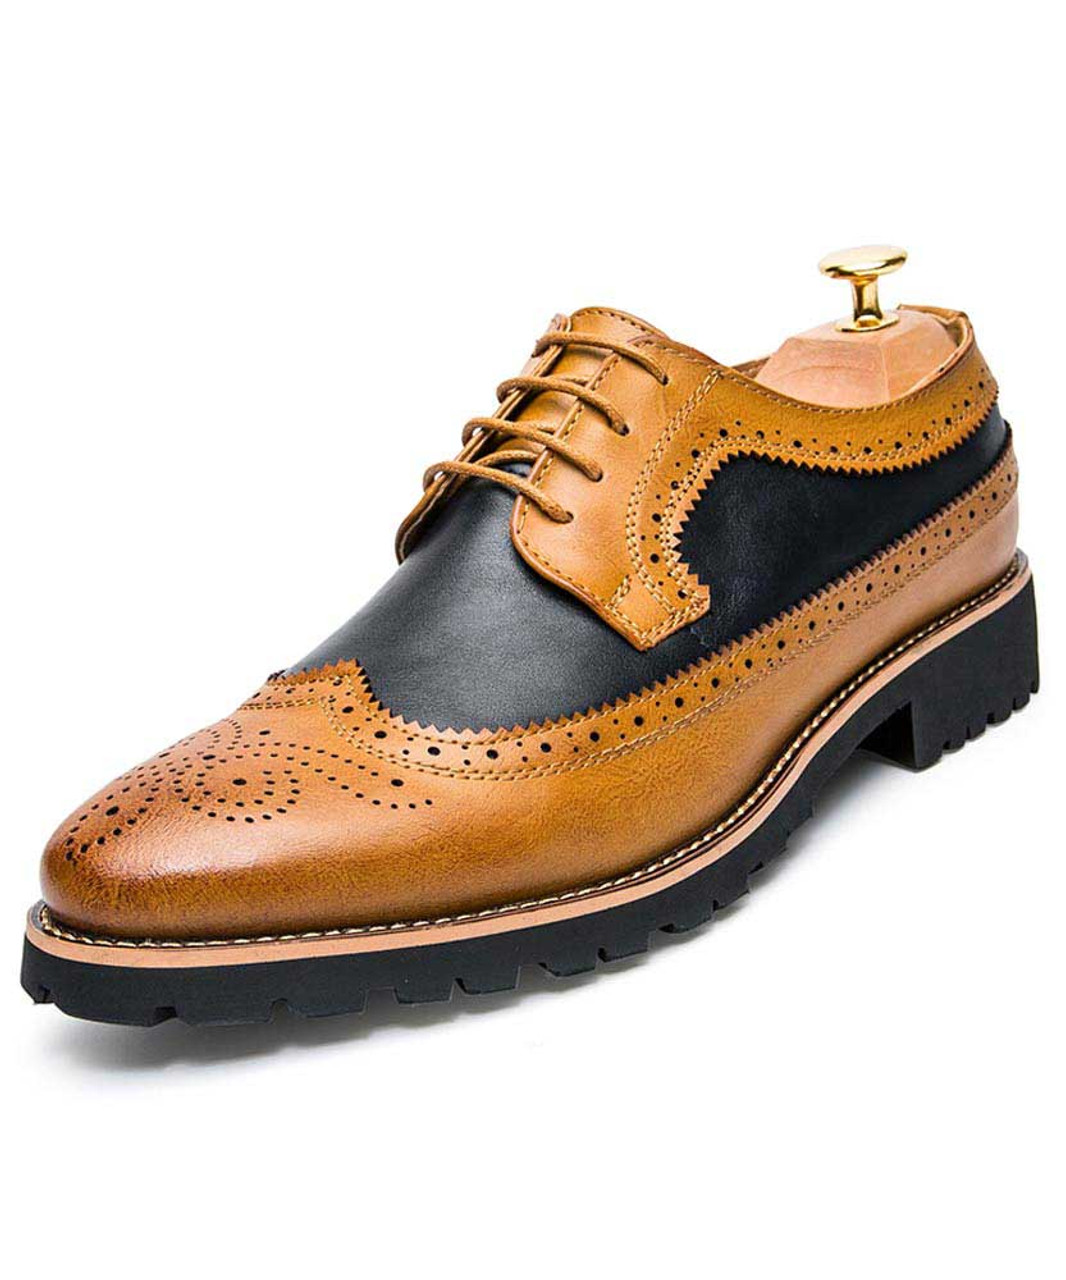 competitive price classic fit where can i buy Brown two tone brogue leather derby dress shoe | Mens dress shoes ...